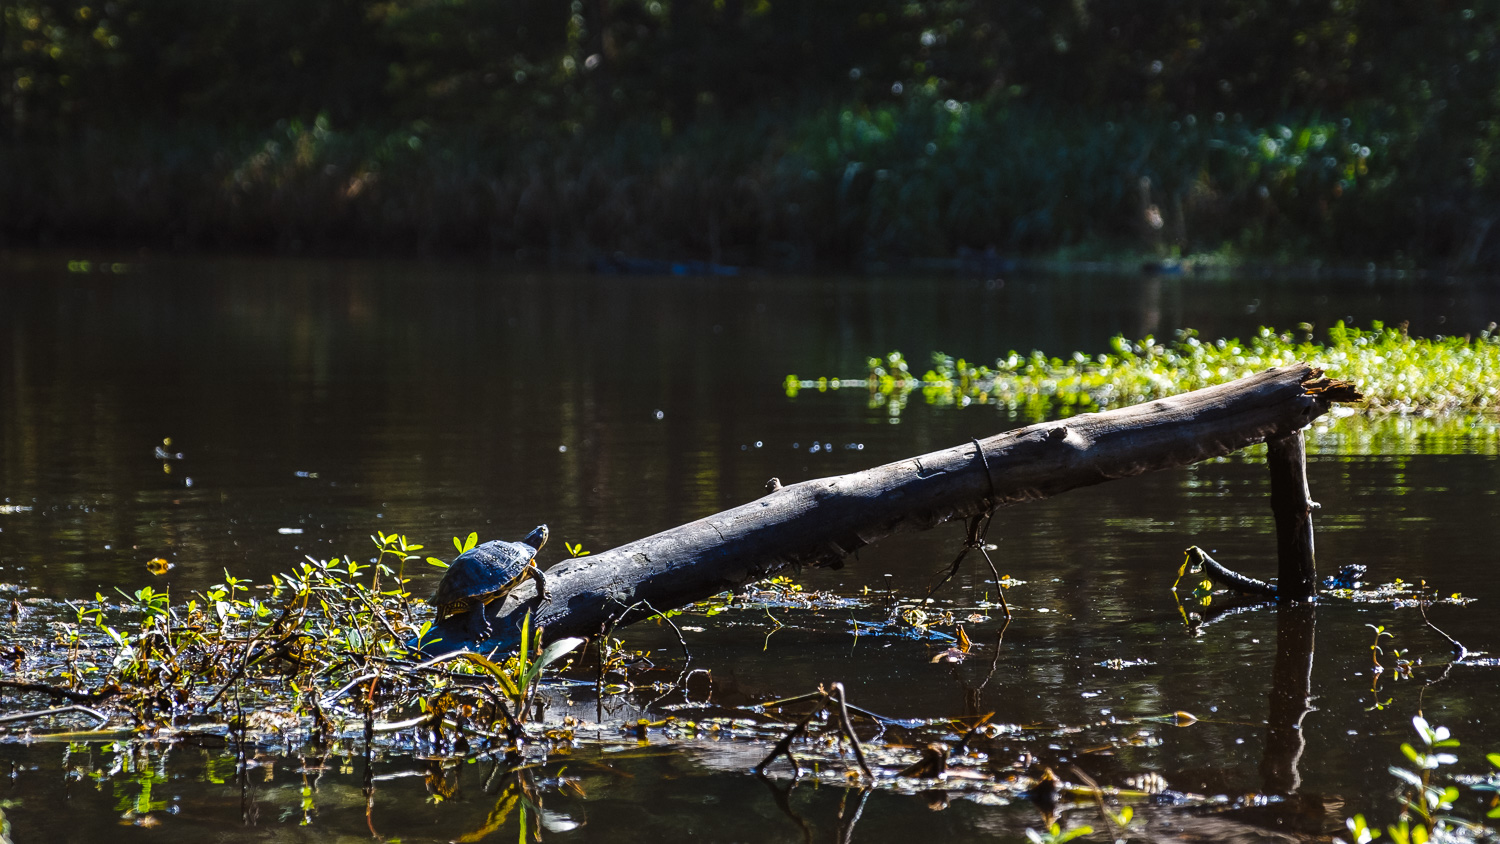 """A turtle in the Bayou - Travel photography and guide by © Natasha Lequepeys for """"And Then I Met Yoko"""". #neworleans #nola #photoblog #travelitinerary #fujifilm #kayaking #naturephotography"""